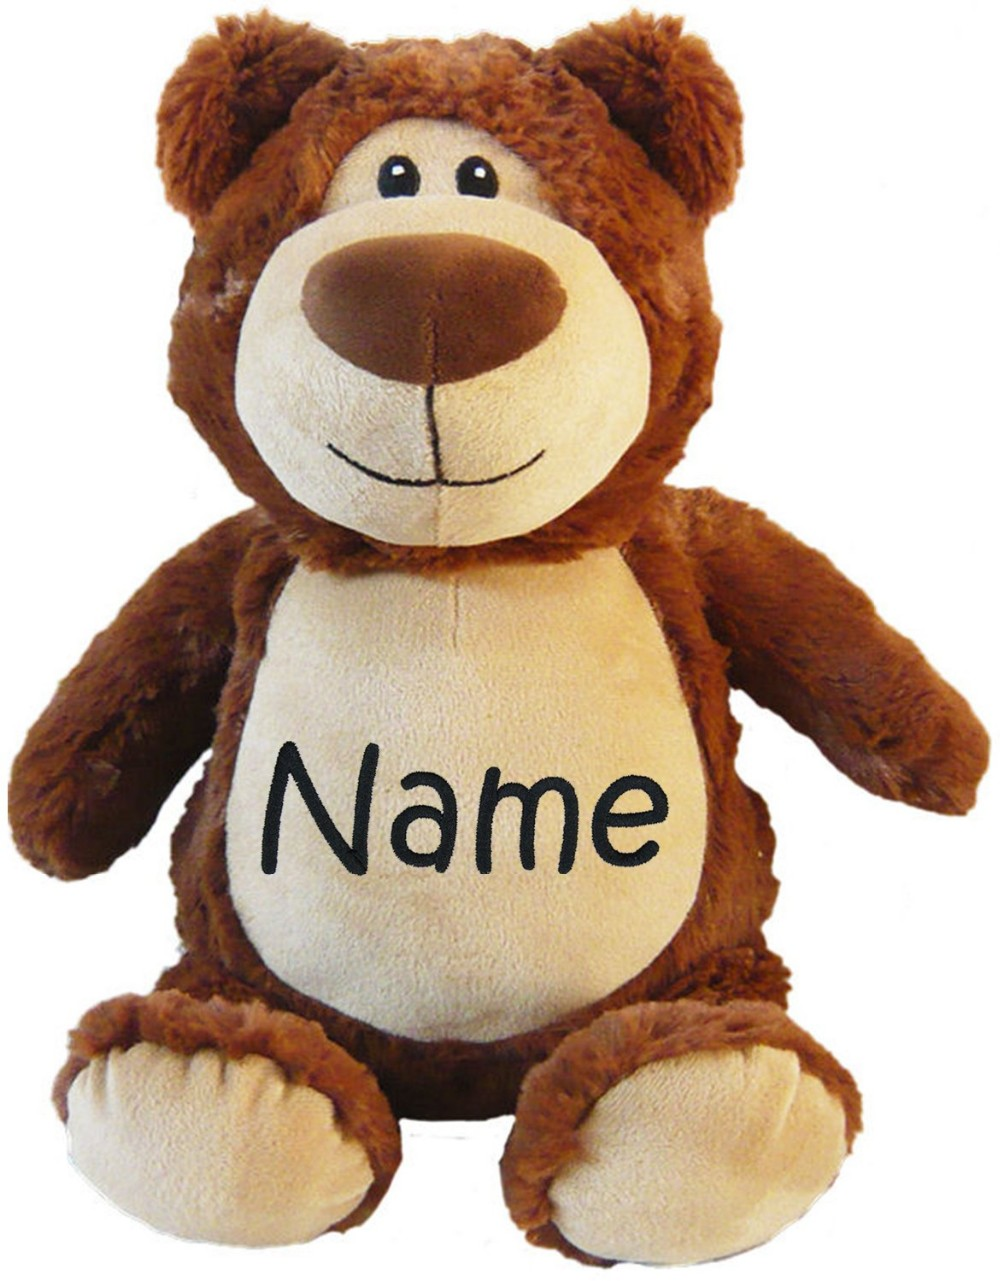 06f39165a13 Custom Personalized Name Plush Teddy Bear With Embroidery Logo - Buy ...